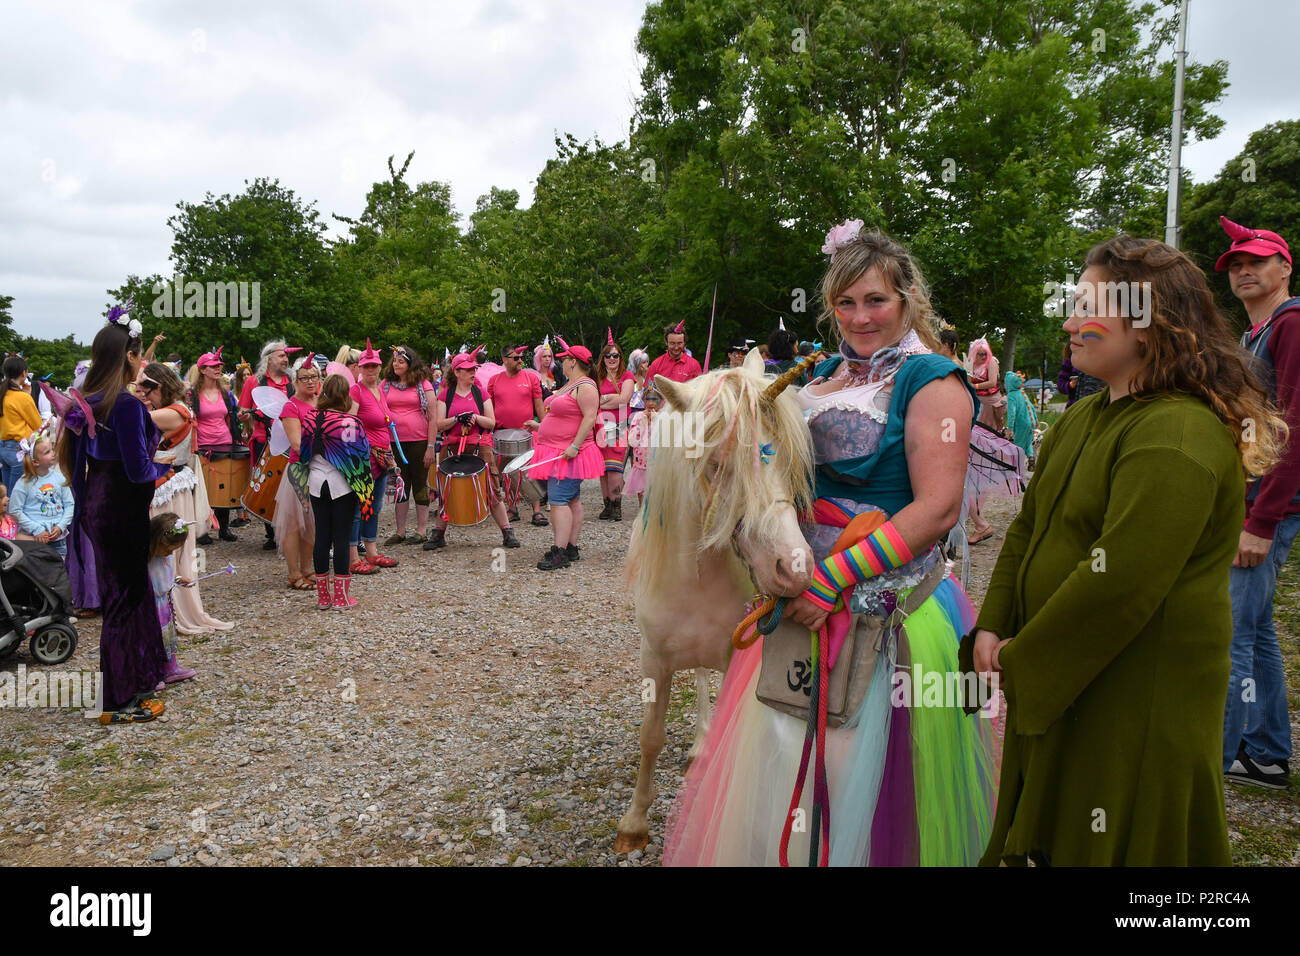 Mount Edgcumbe, Torpoint, Cornwall, UK. 16th June 2018. At the annual 3 wishes  fairy festival organisers are confident that the world record has been set for the largest gathering of people wearing Unicorn horns. Over 550 people were counted in. The final confirmed count will be confirmed later. Credit: Simon Maycock/Alamy Live News Credit: Simon Maycock/Alamy Live News - Stock Image